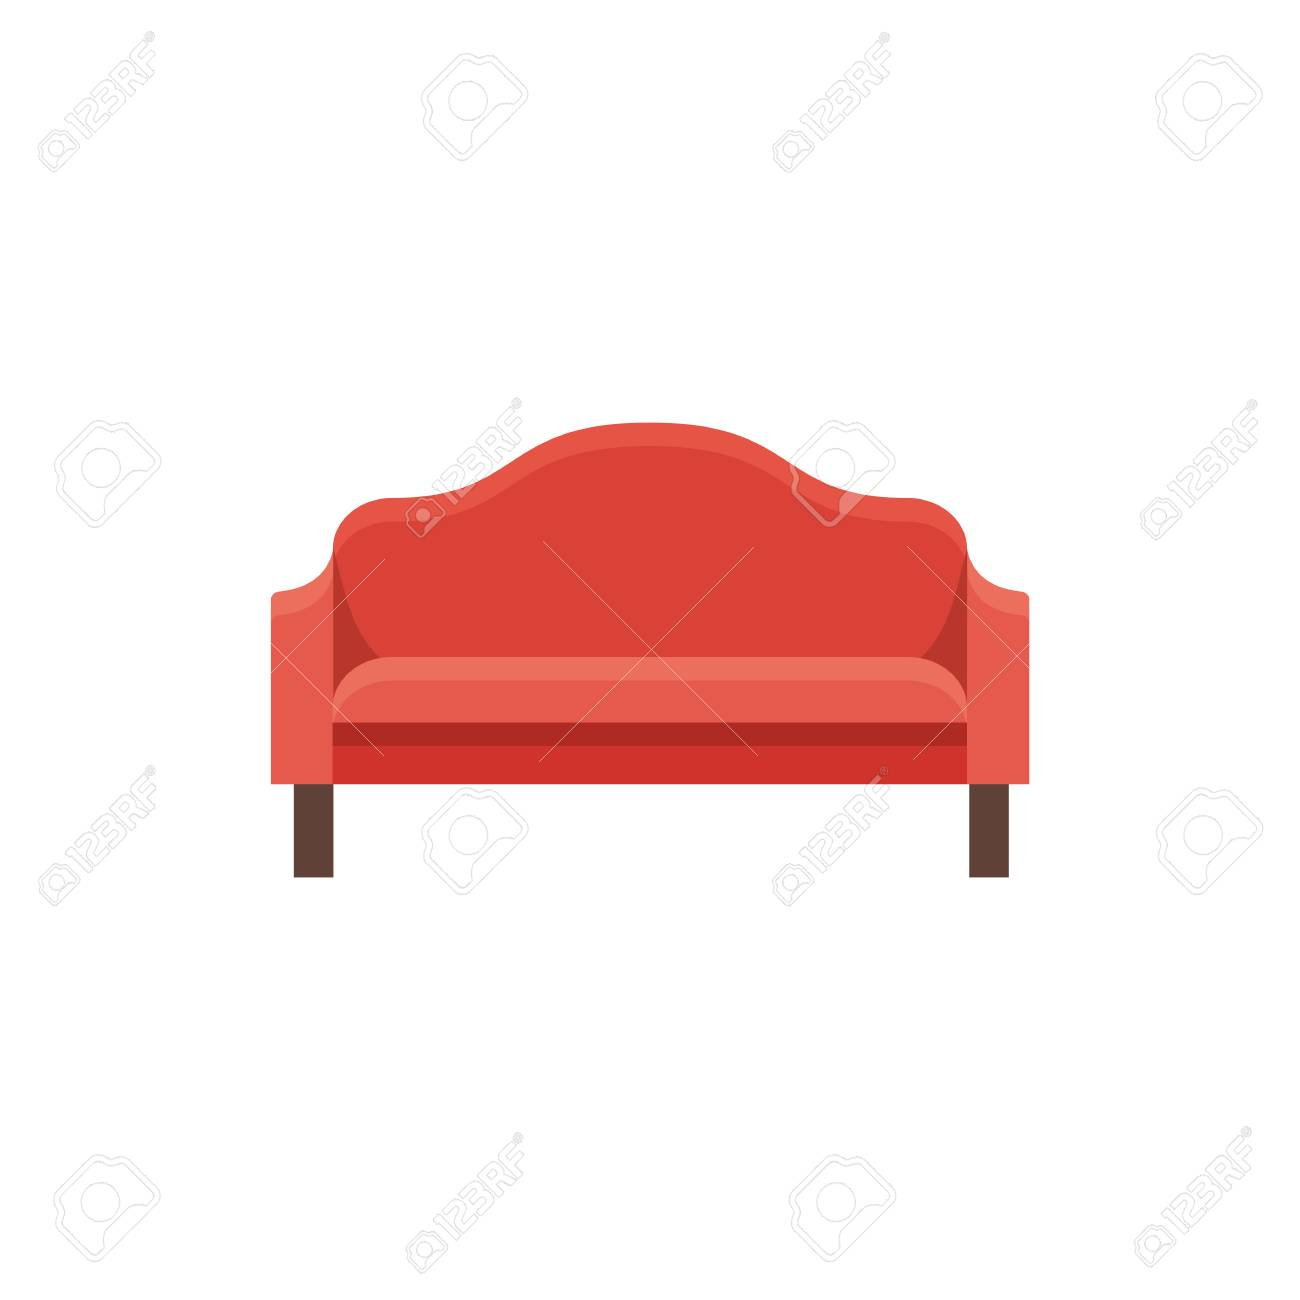 Red Sofa Vector Illustration Flat Icon Of Settee Element Of